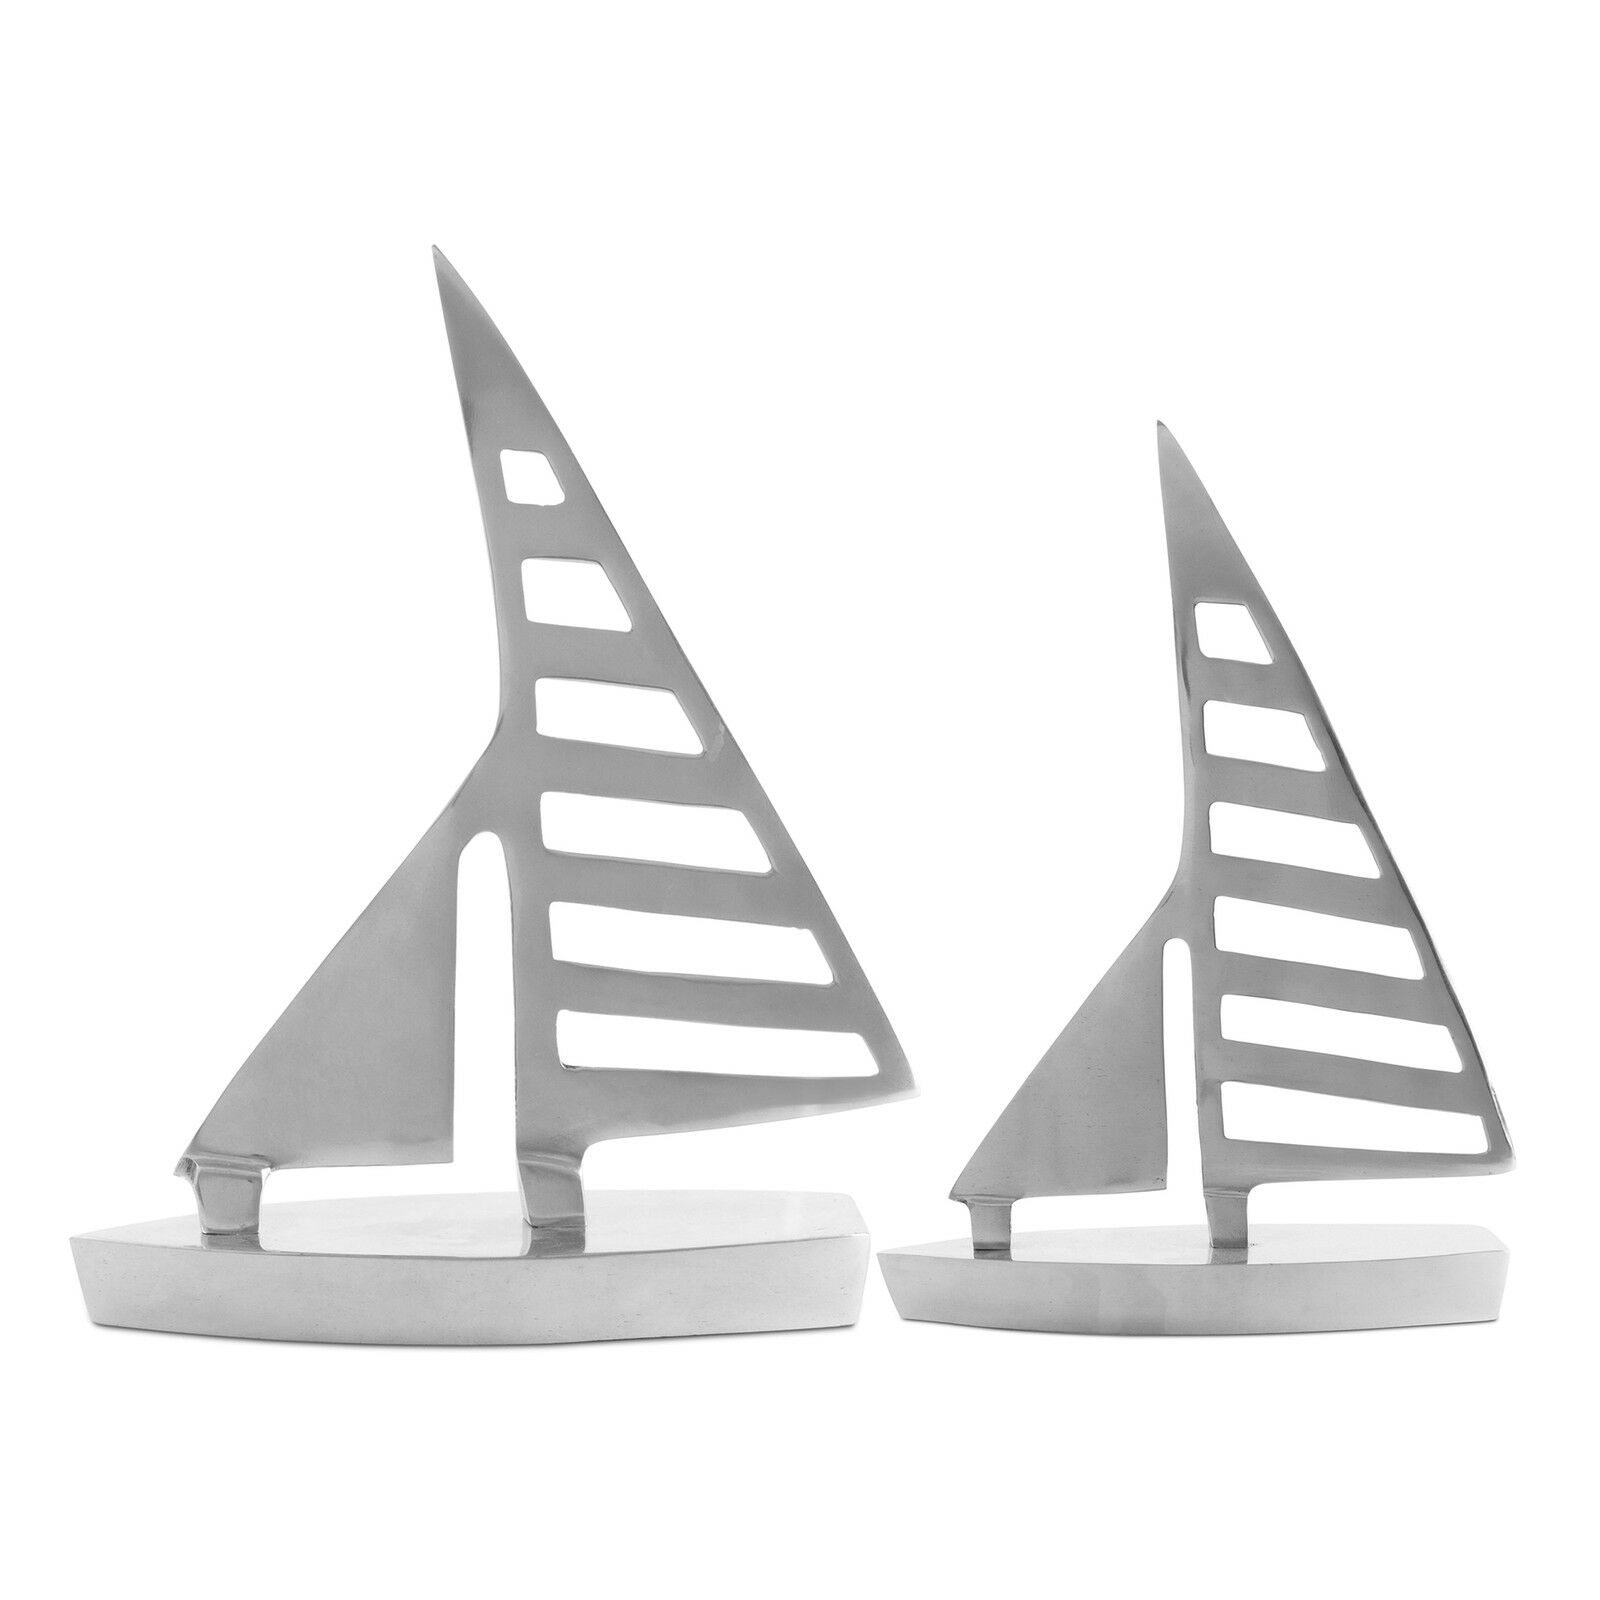 CLIPPER' PAIR OF Silver Aluminium Nautical Sail Boat Home Bathroom on decks for boats, toilets for boats, wiring for boats, kitchen cabinets for boats, carpet for boats, sump pumps for boats, beds for boats, bedding for boats, lighting for boats, grab rails for boats, furniture for boats, windows for boats, steps for boats, upholstery for boats, doors for boats, boilers for boats, carports for boats, solar panels for boats, grills for boats, sinks for boats,